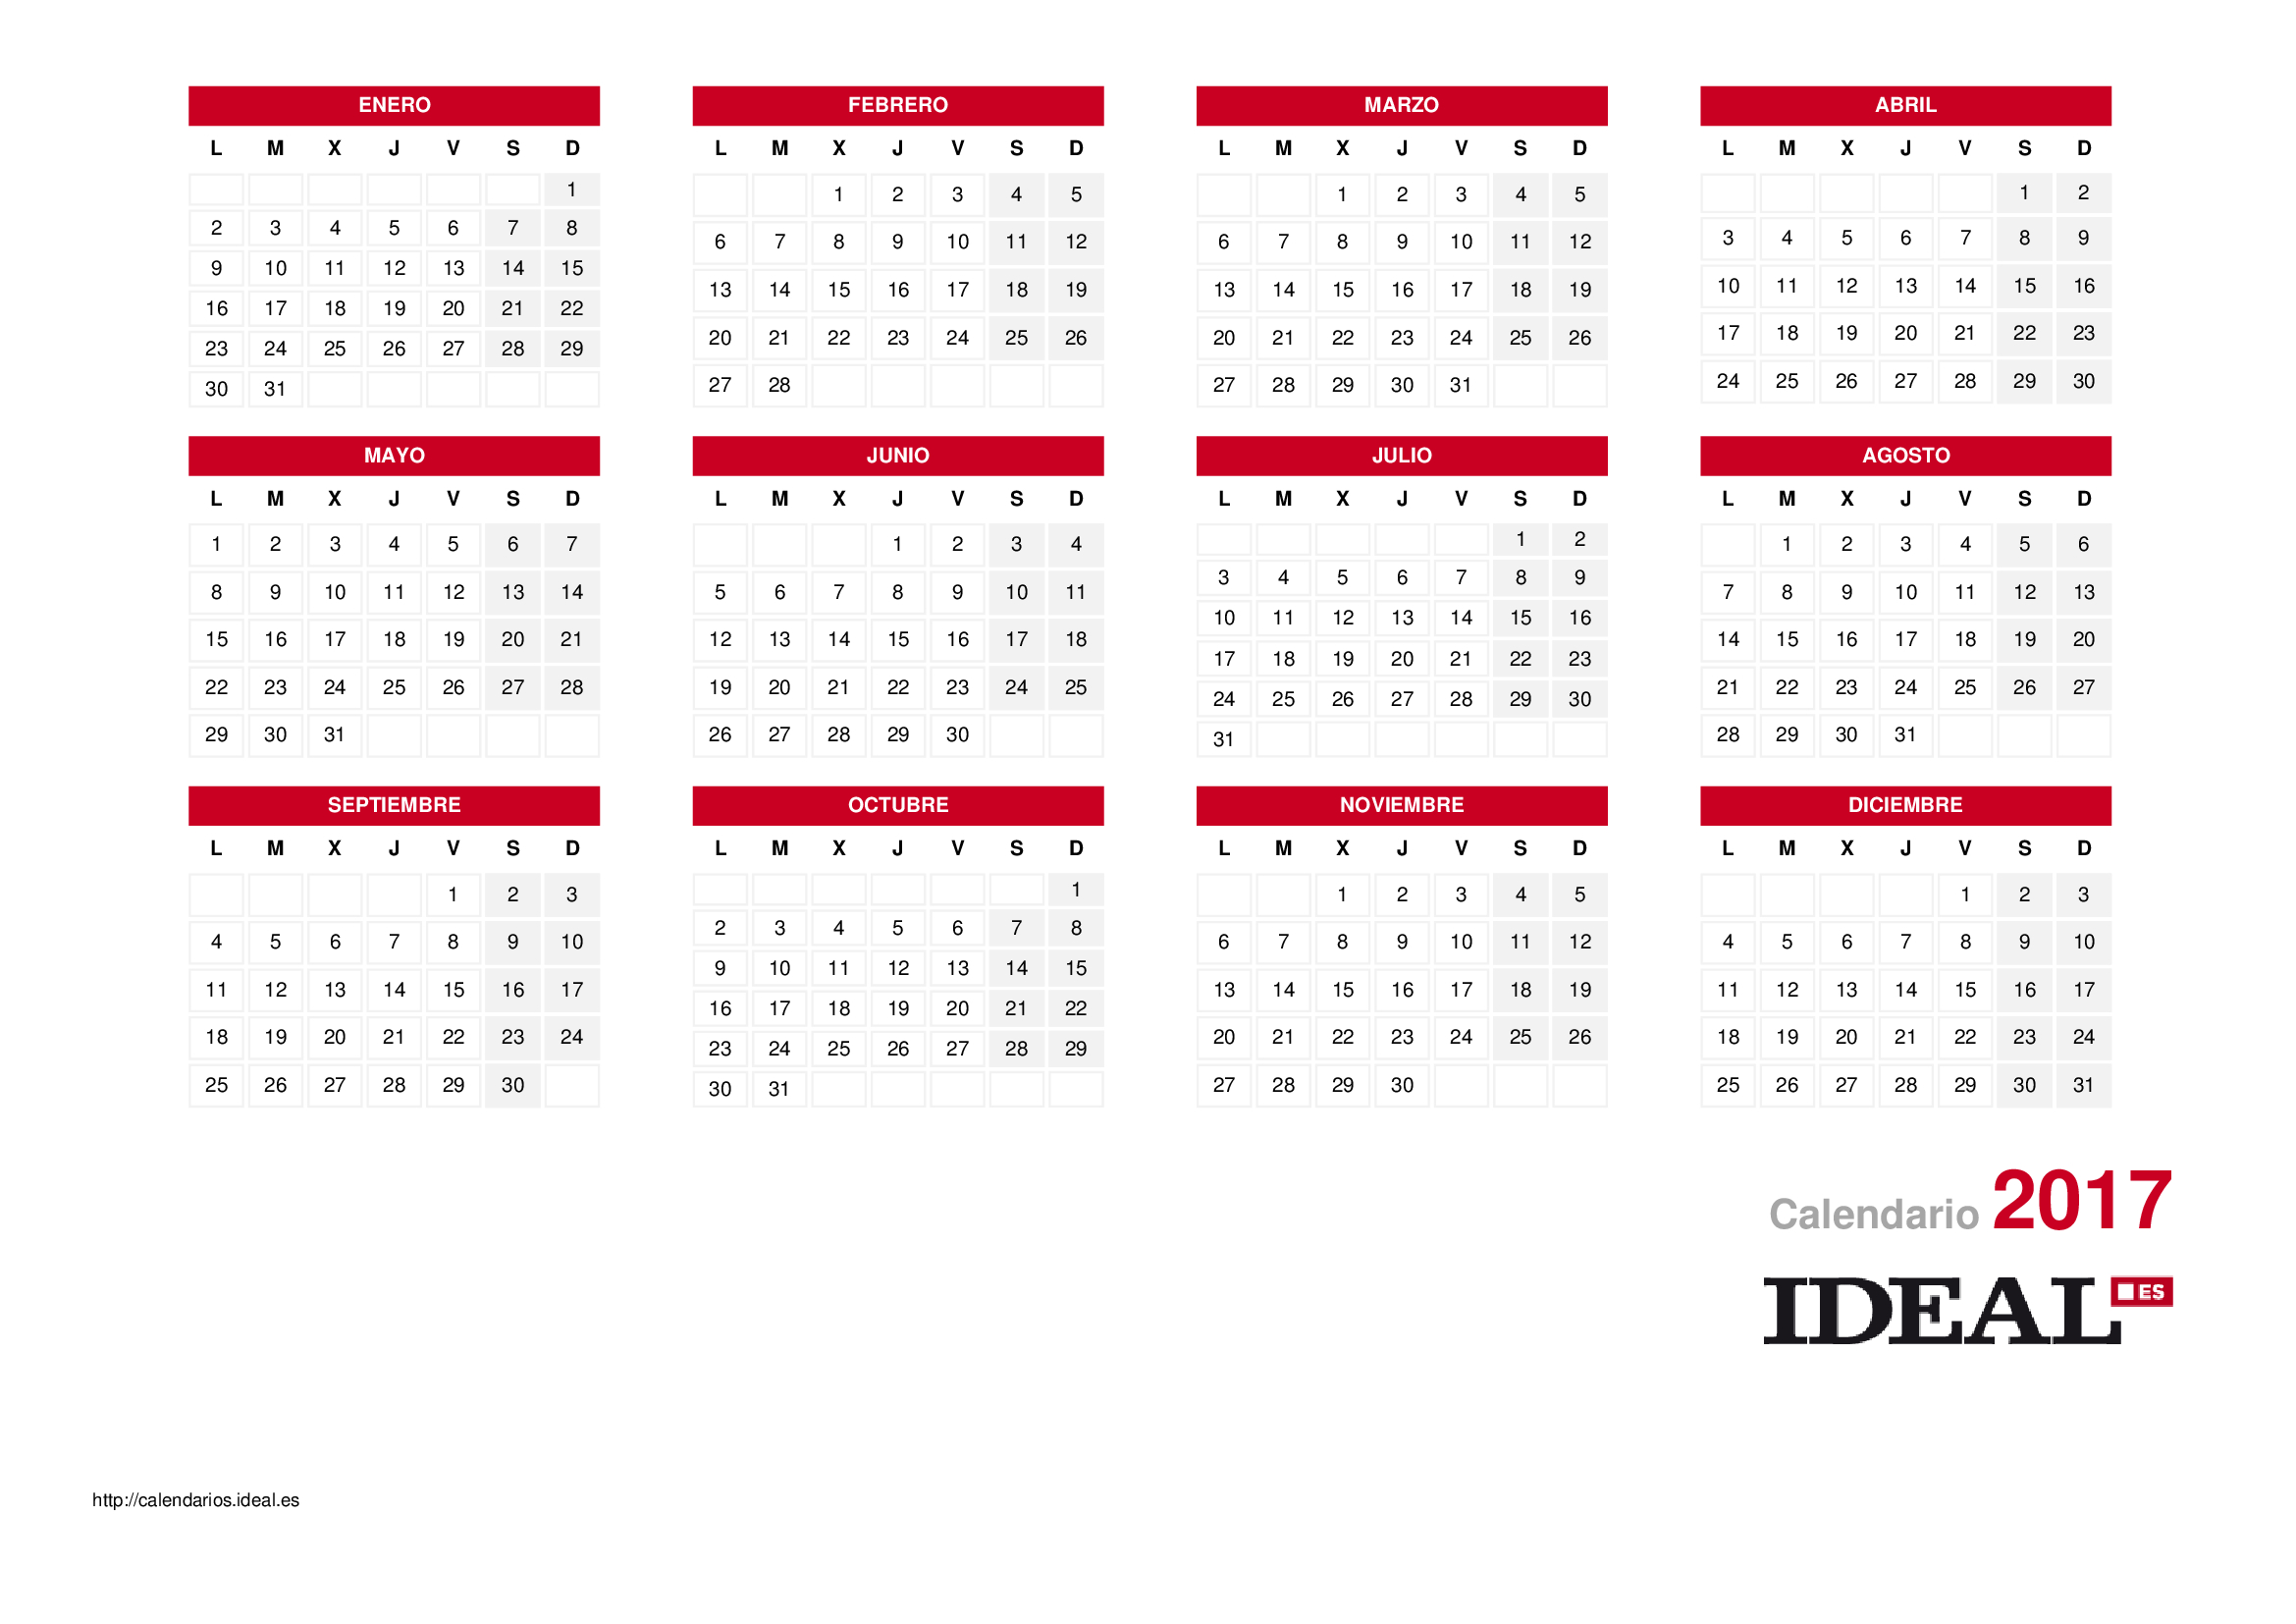 Calendario Laboral 2020 Valencia.Calendario Laboral De 2019 Calendarios Ideal Dias Festivos